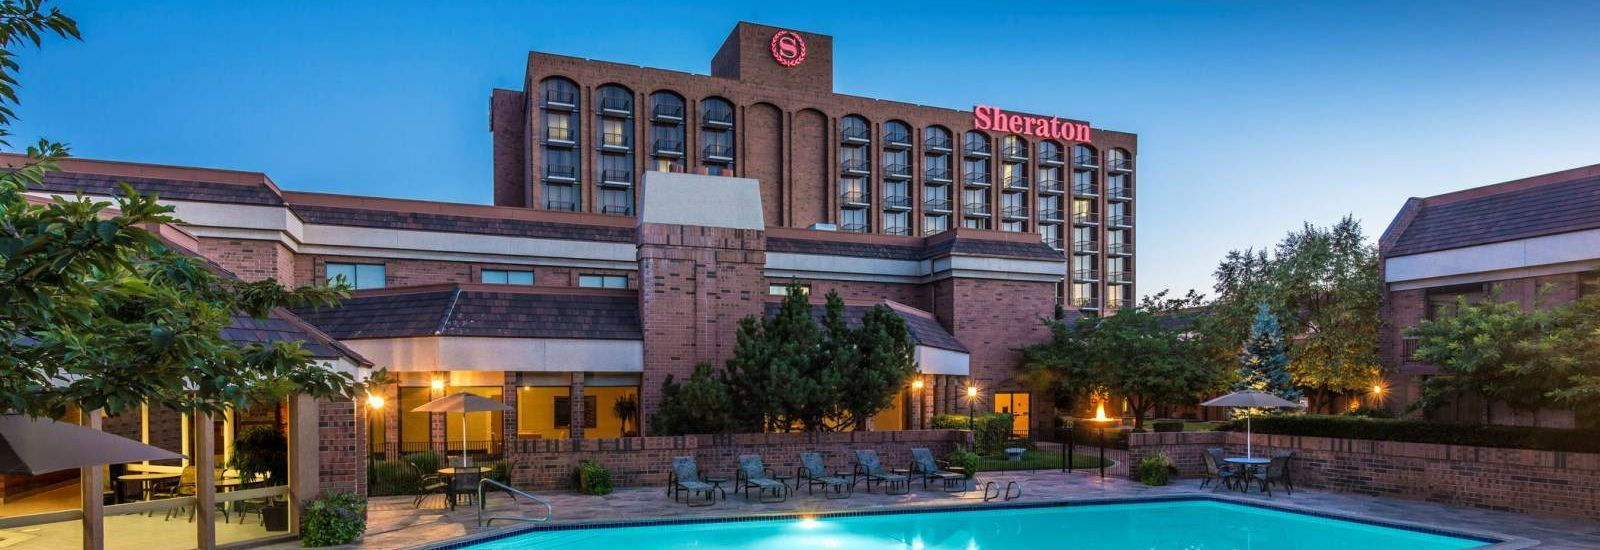 Sheraton Salt Lake City Hotel - Exterior